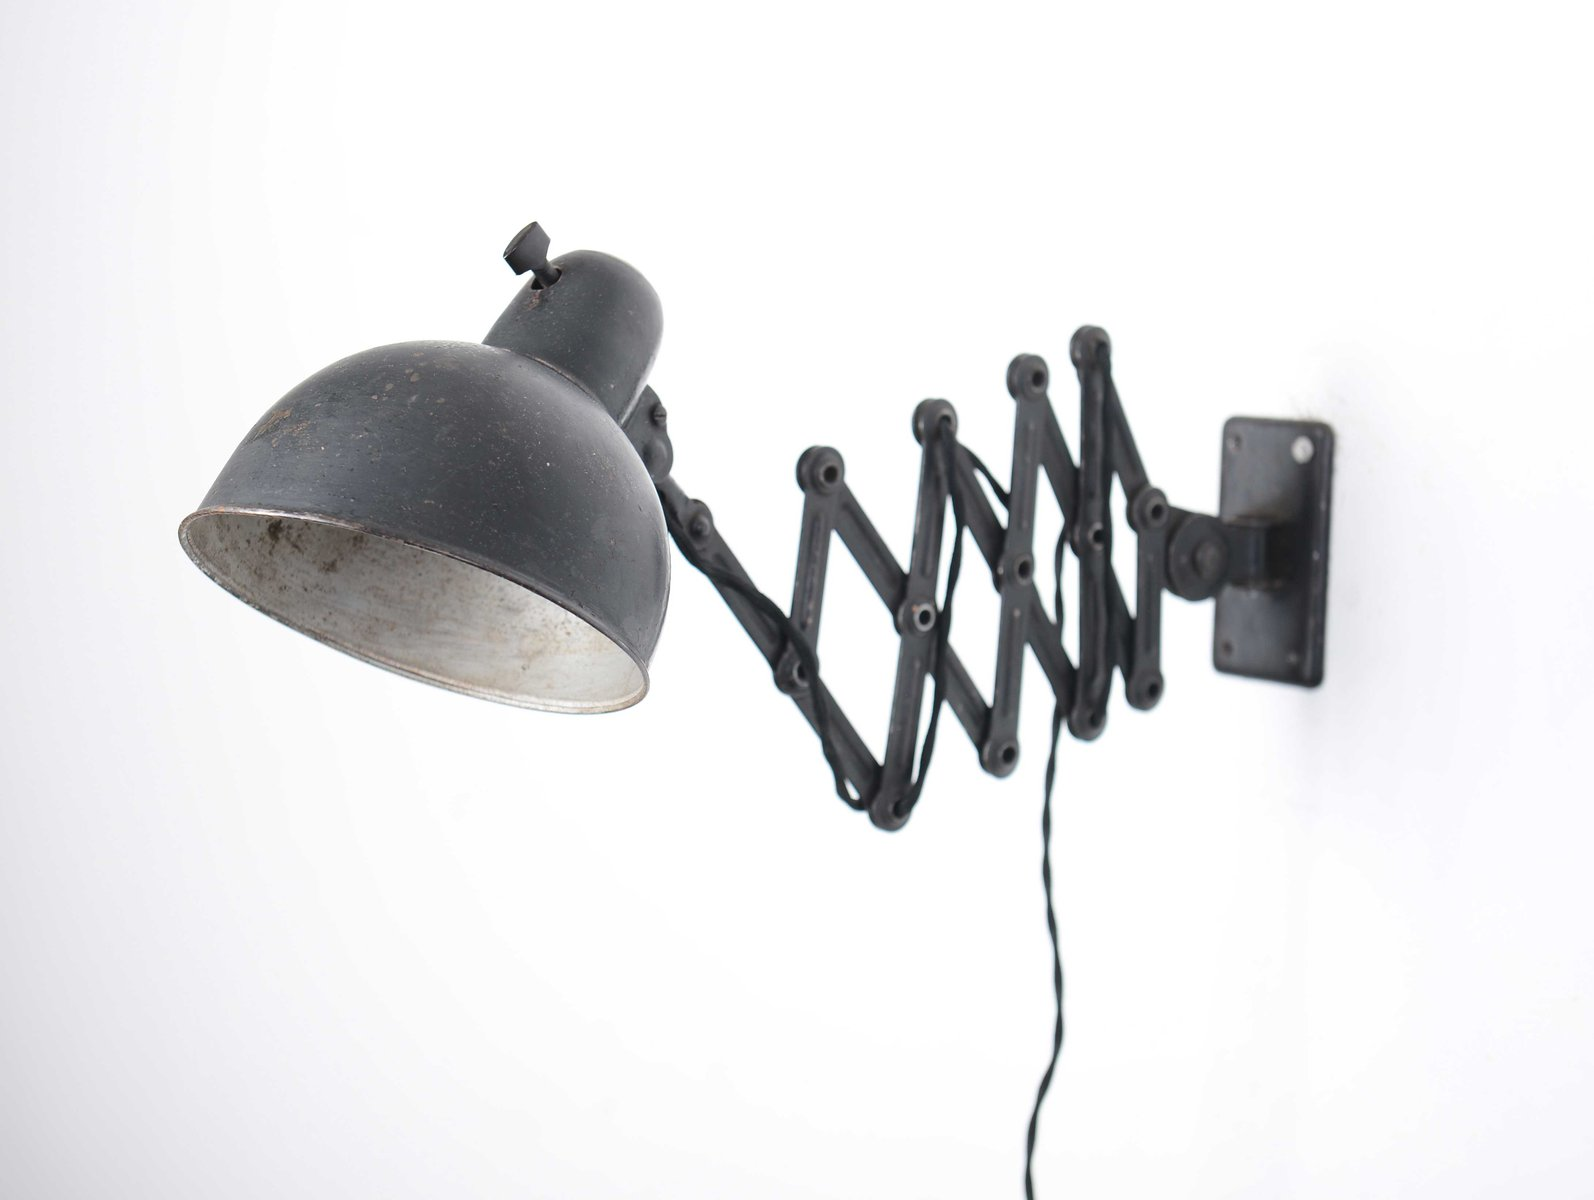 Leuchten Kaiser Model 6582 Scissor Lamp By Christian Dell For Kaiser Idell/kaiser Leuchten, 1930s For Sale At Pamono